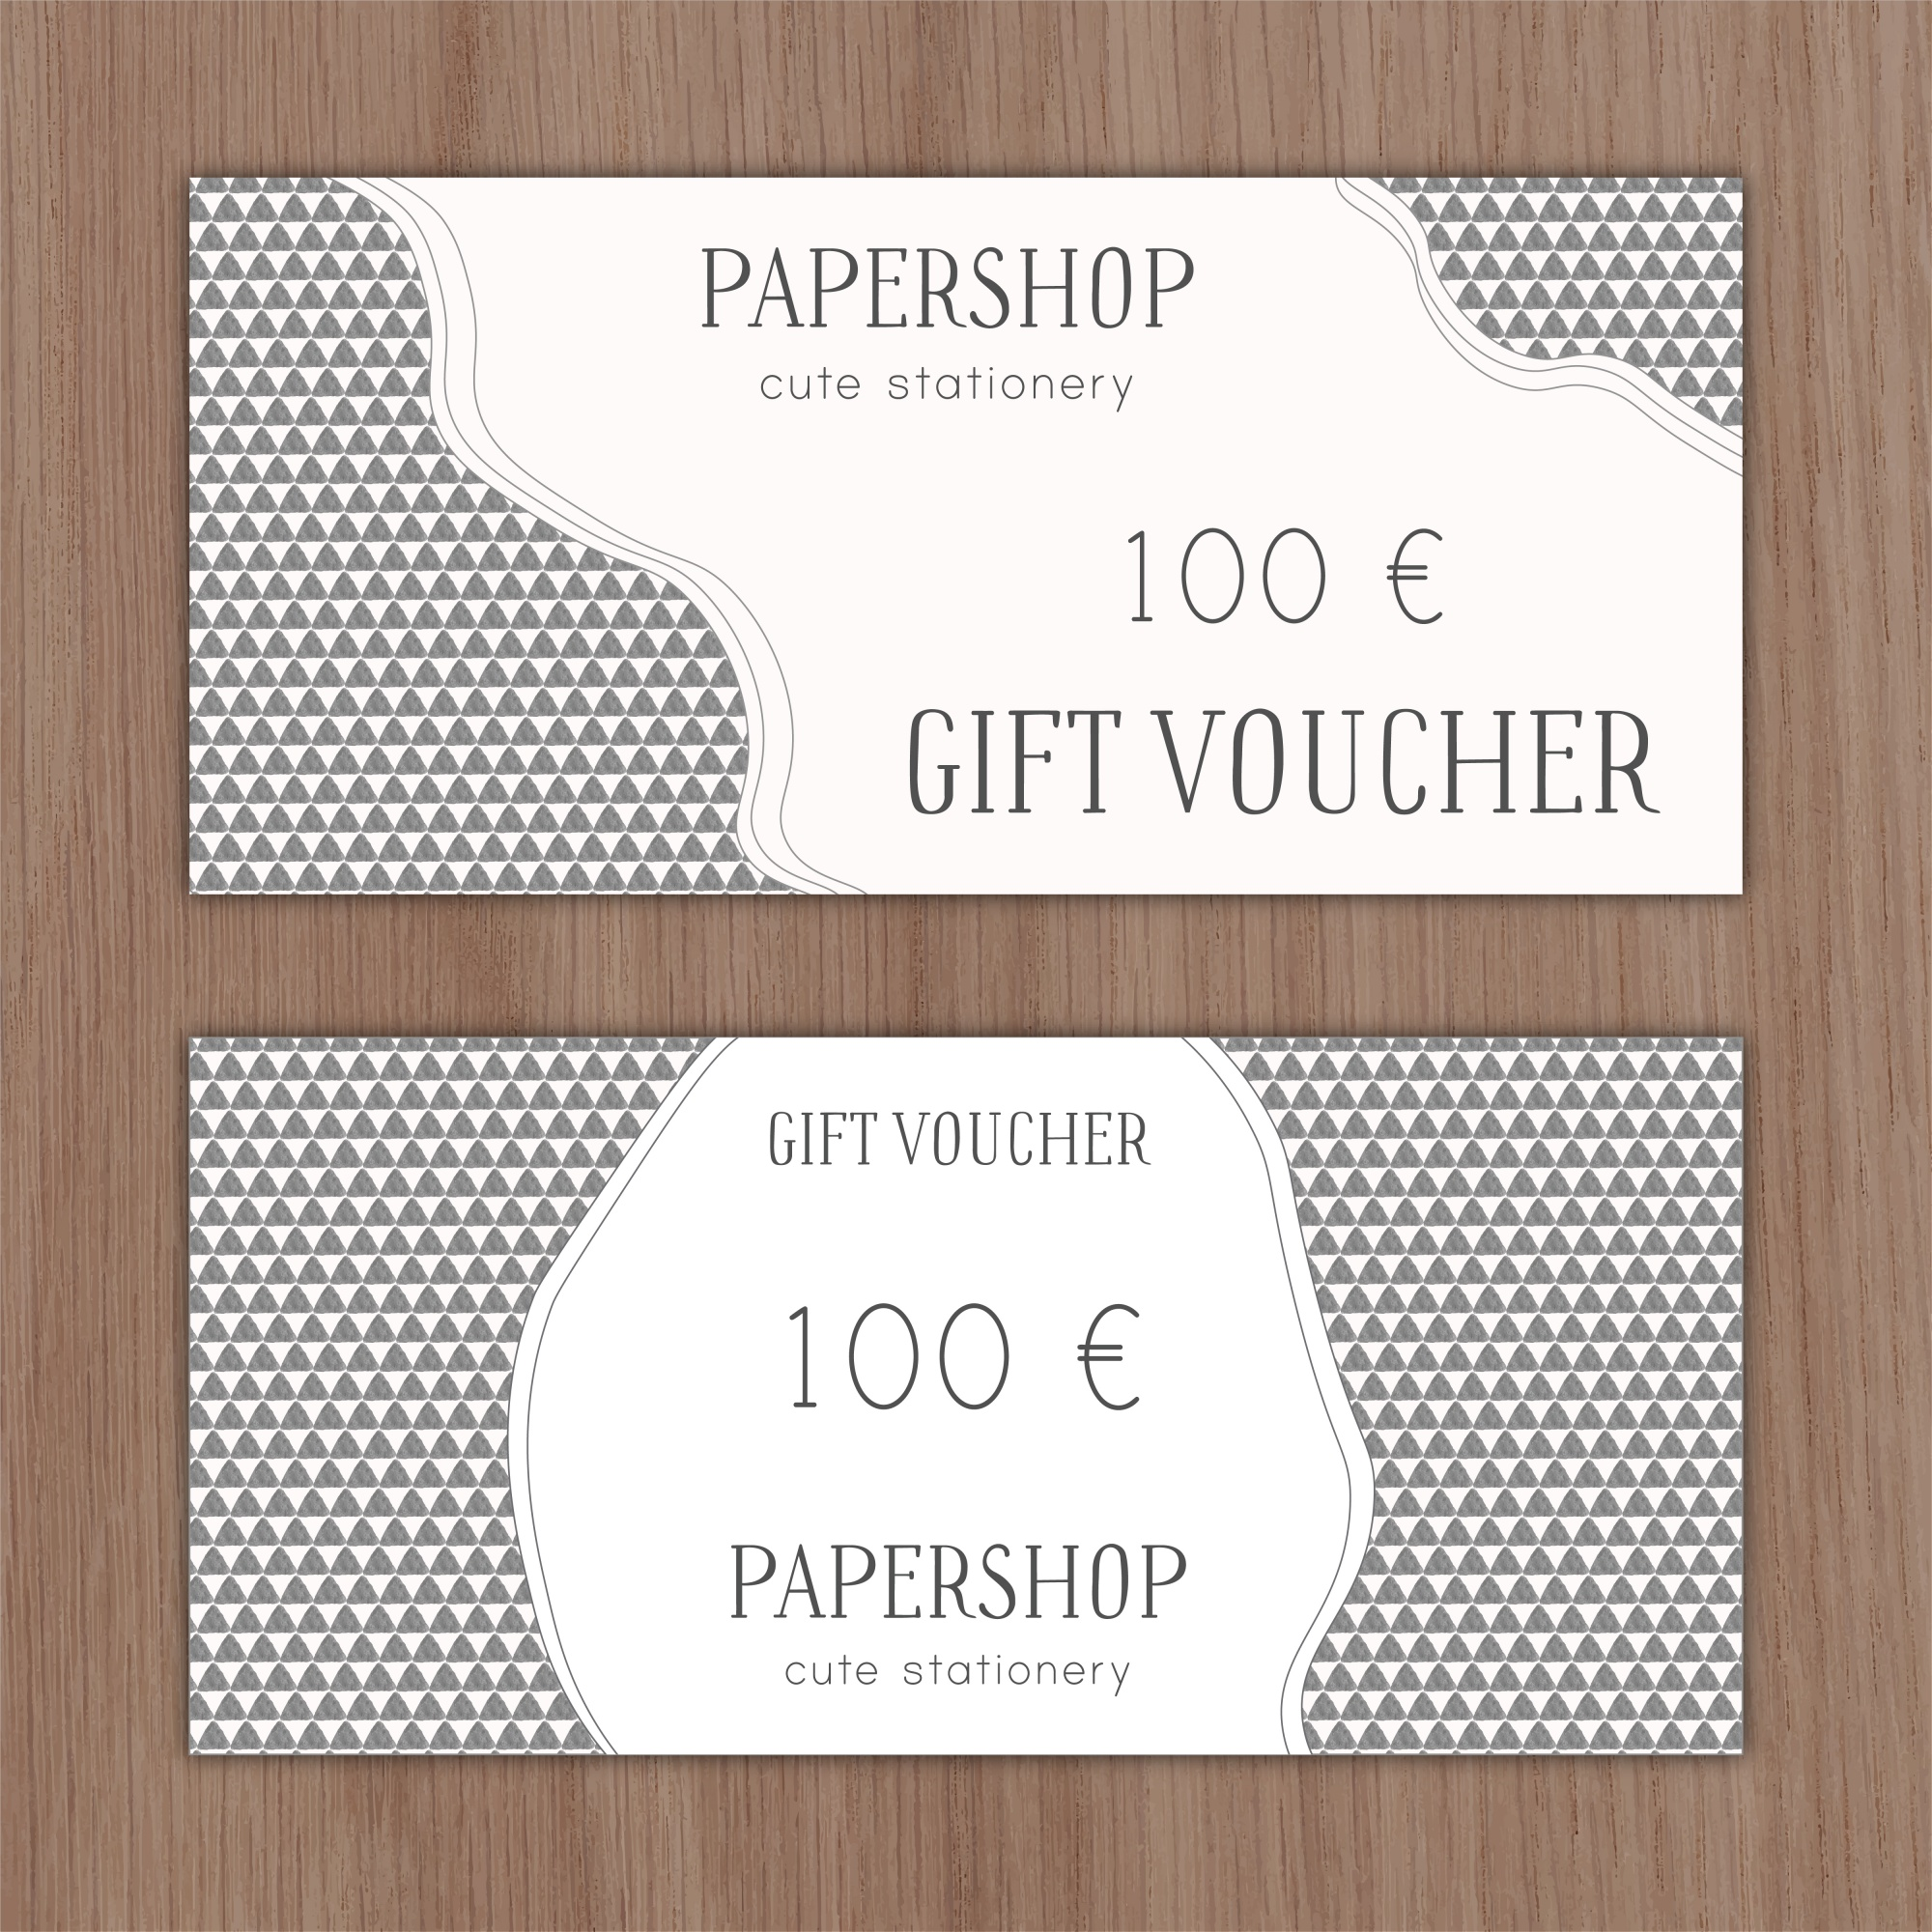 Hand drawn discount voucher with geometric shapes